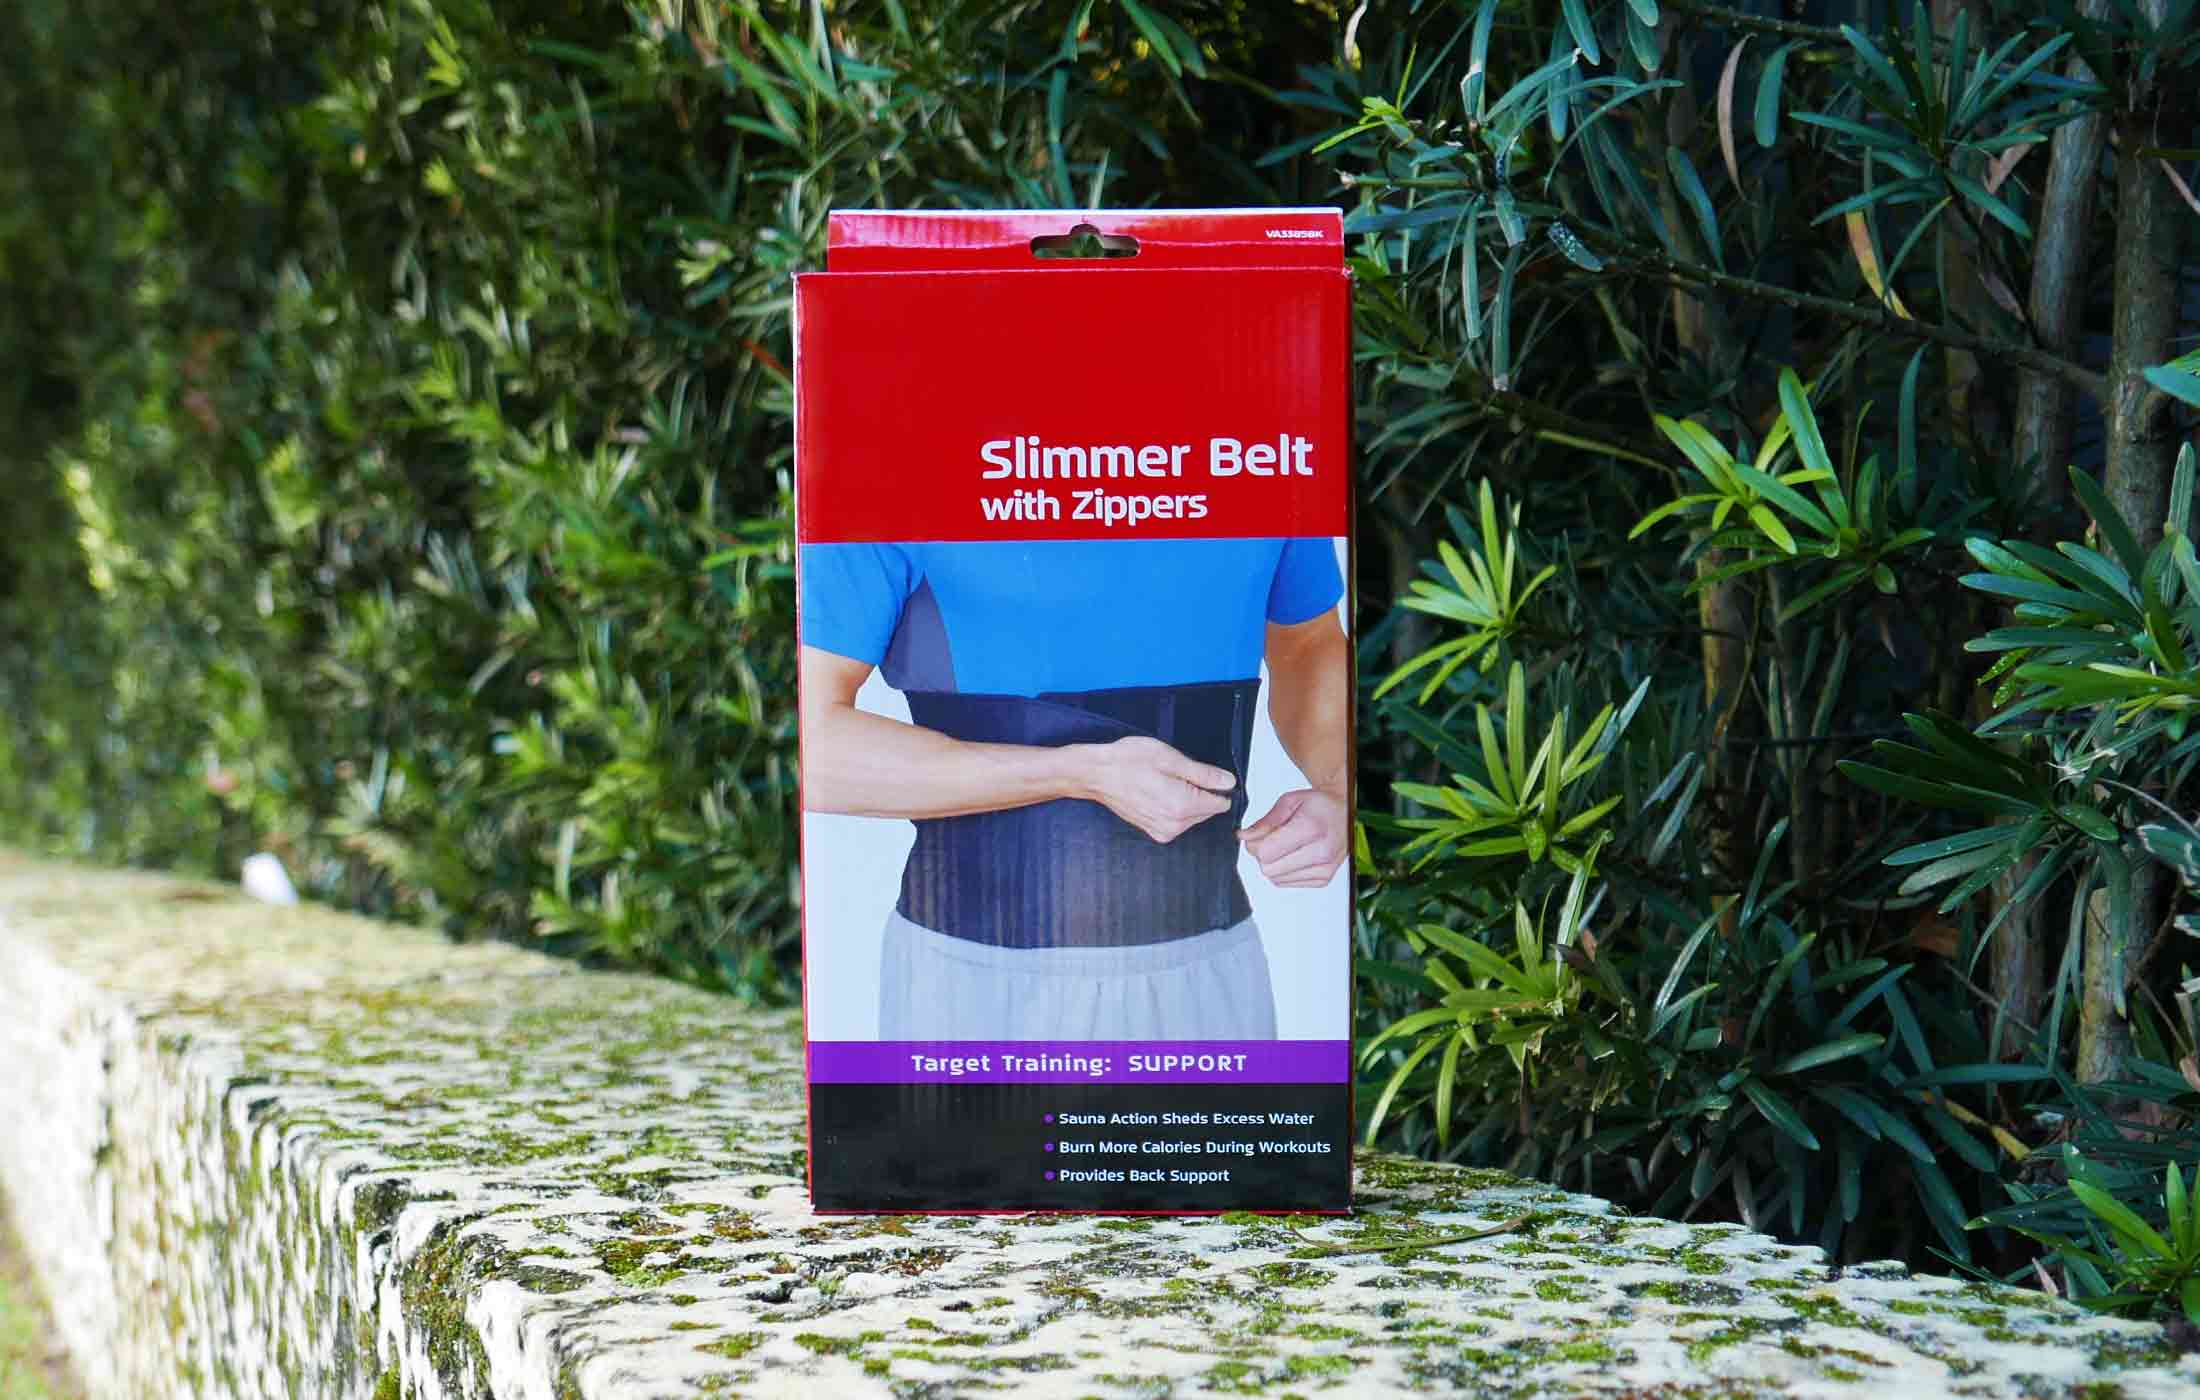 36de7d440c Slimmer Belt Review - 11 Things You Need to Know